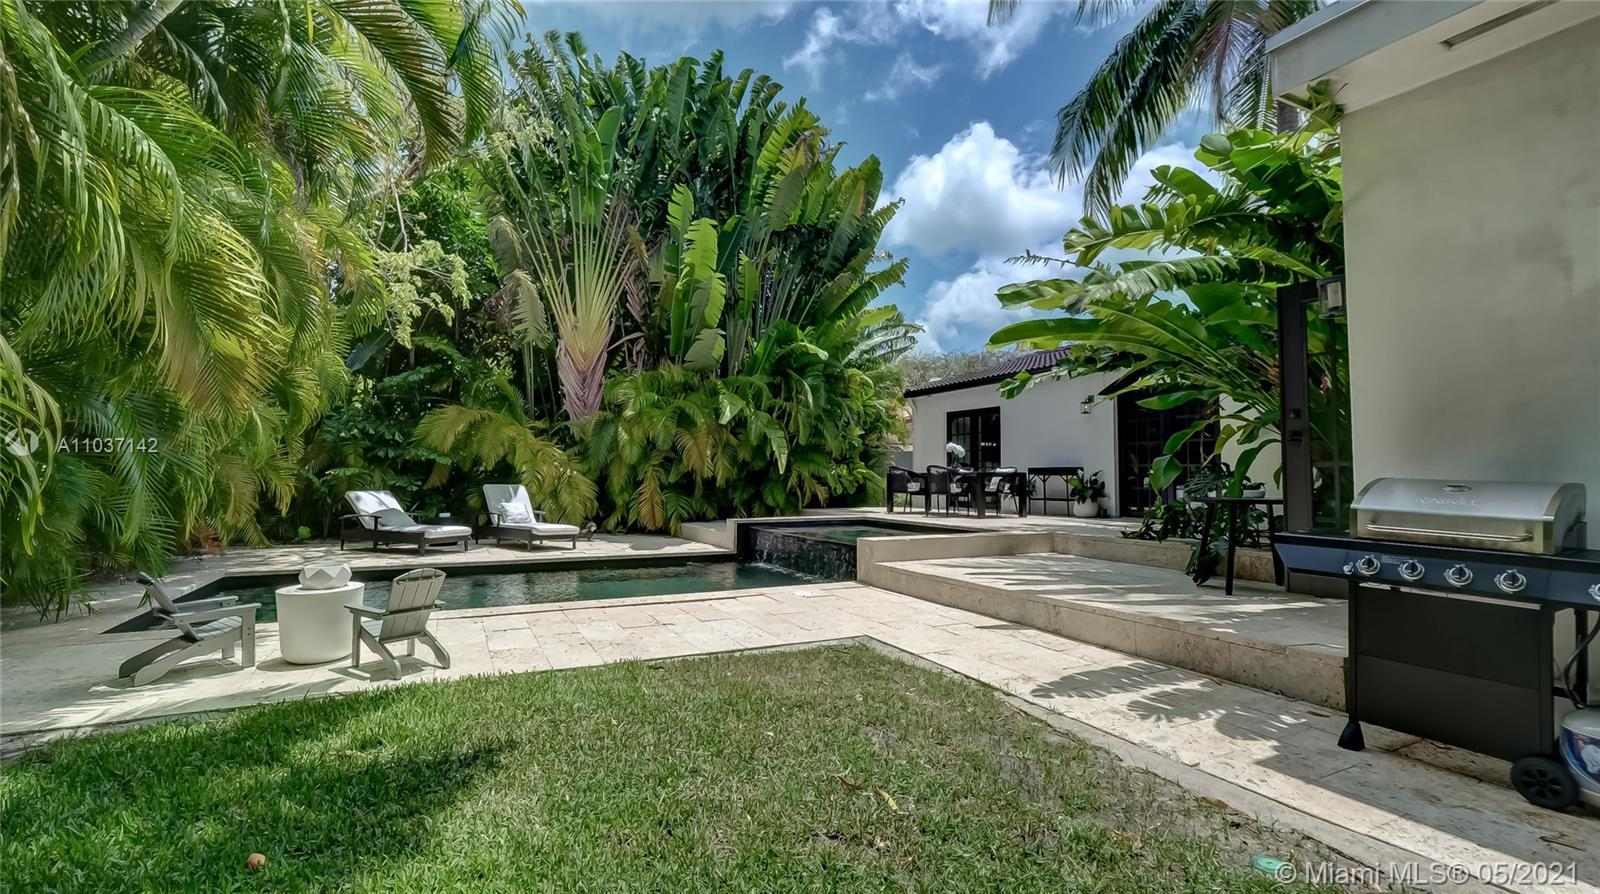 A peaceful Oasis in one of the most appealing neighborhoods of Miami, Morningside, a gated community